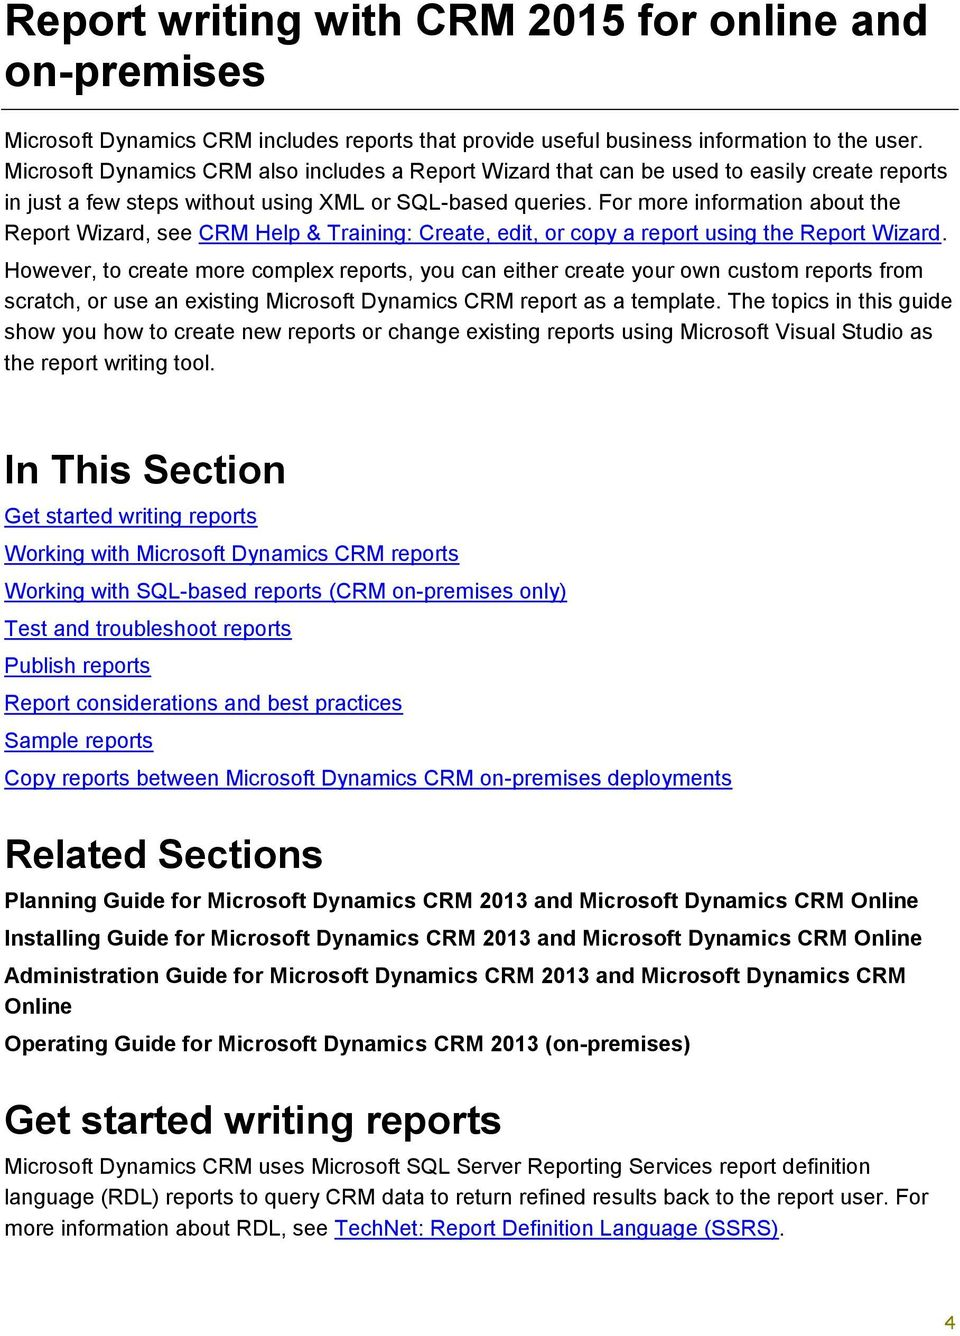 resume cv cover letter top 10 mysql reporting tools 9 1